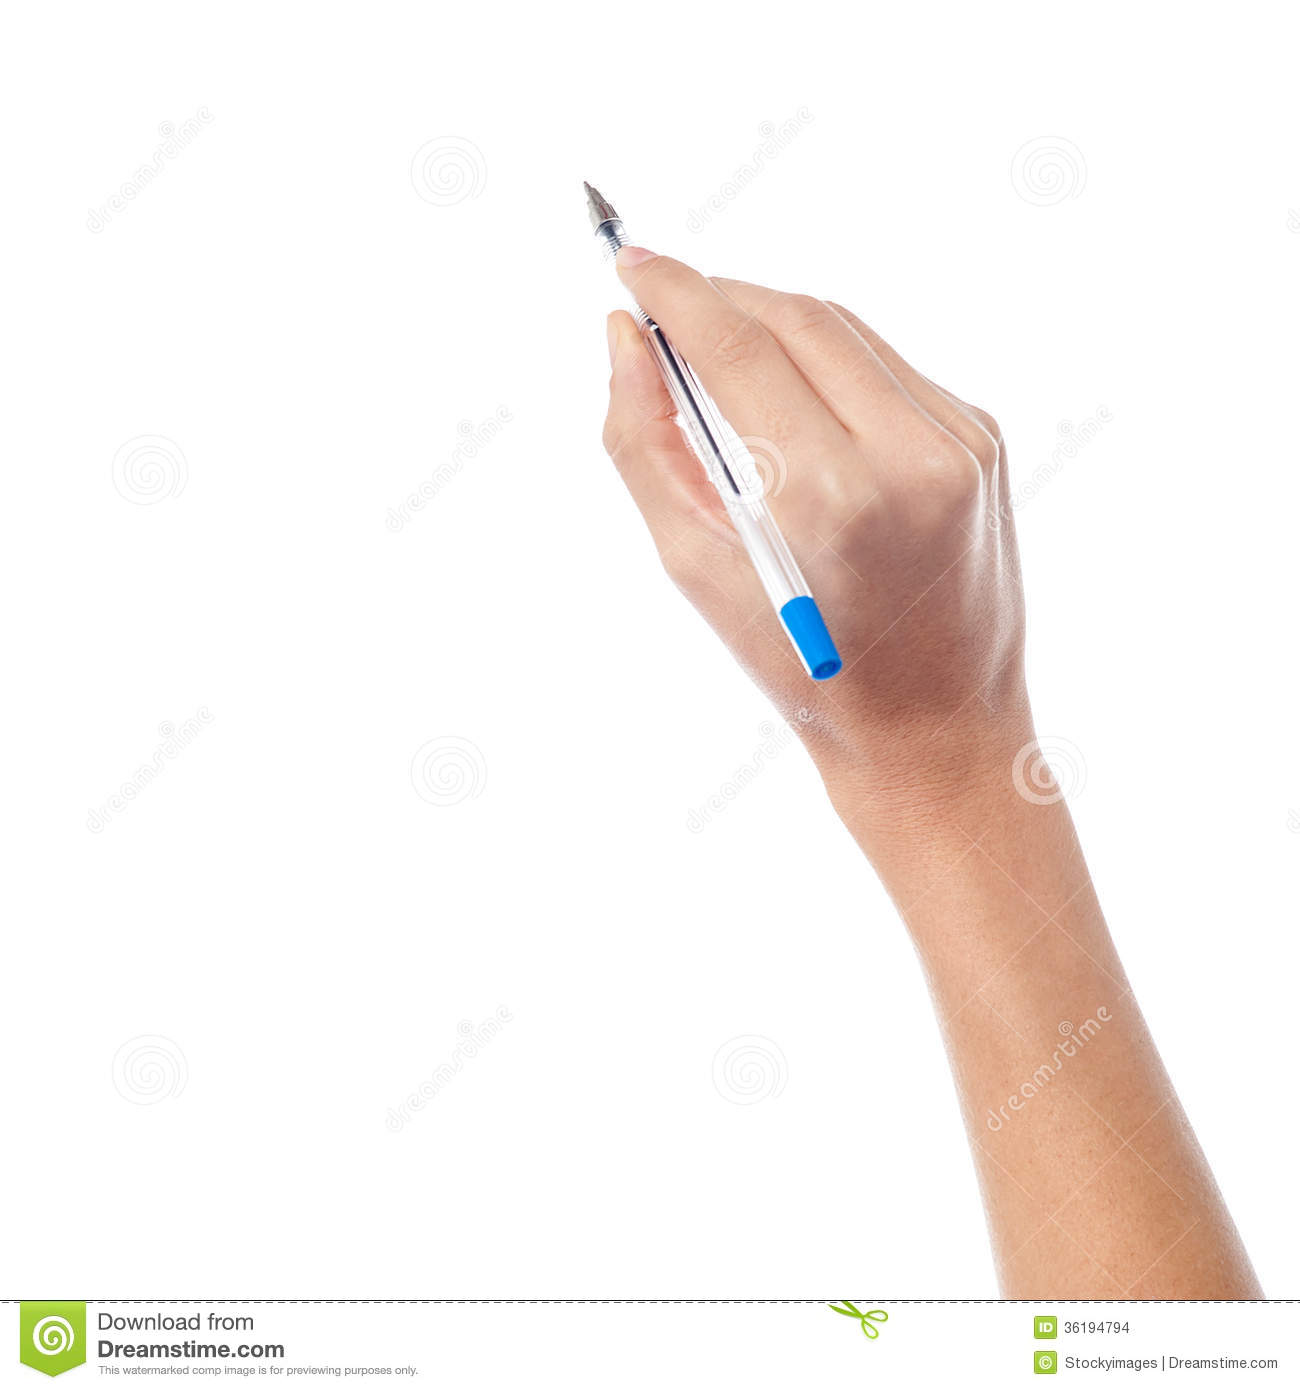 how to write with other hand